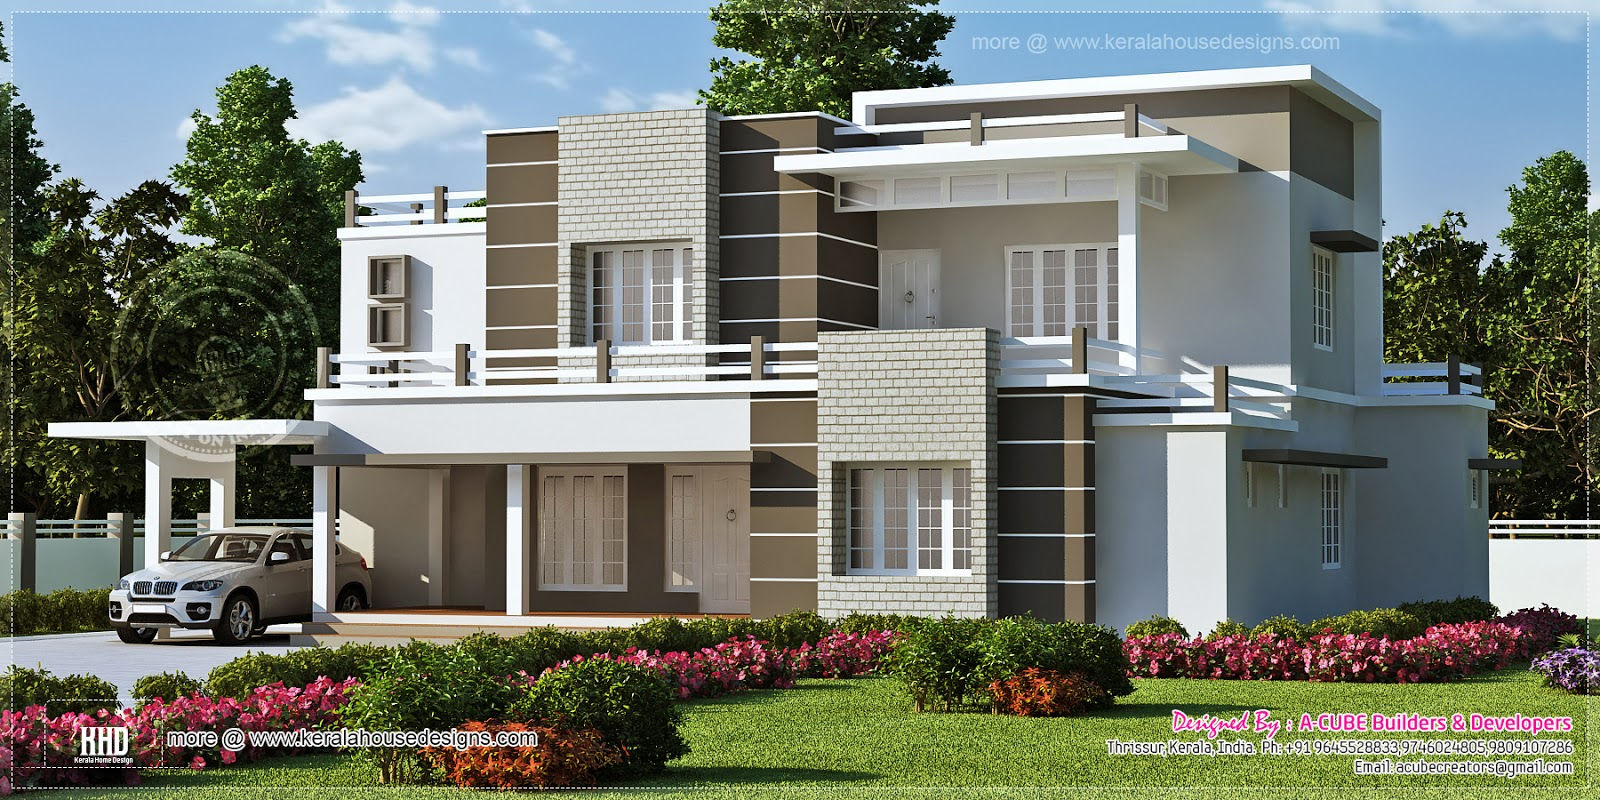 Beautiful sober color contemporary home design kerala for Kerala home designs contemporary